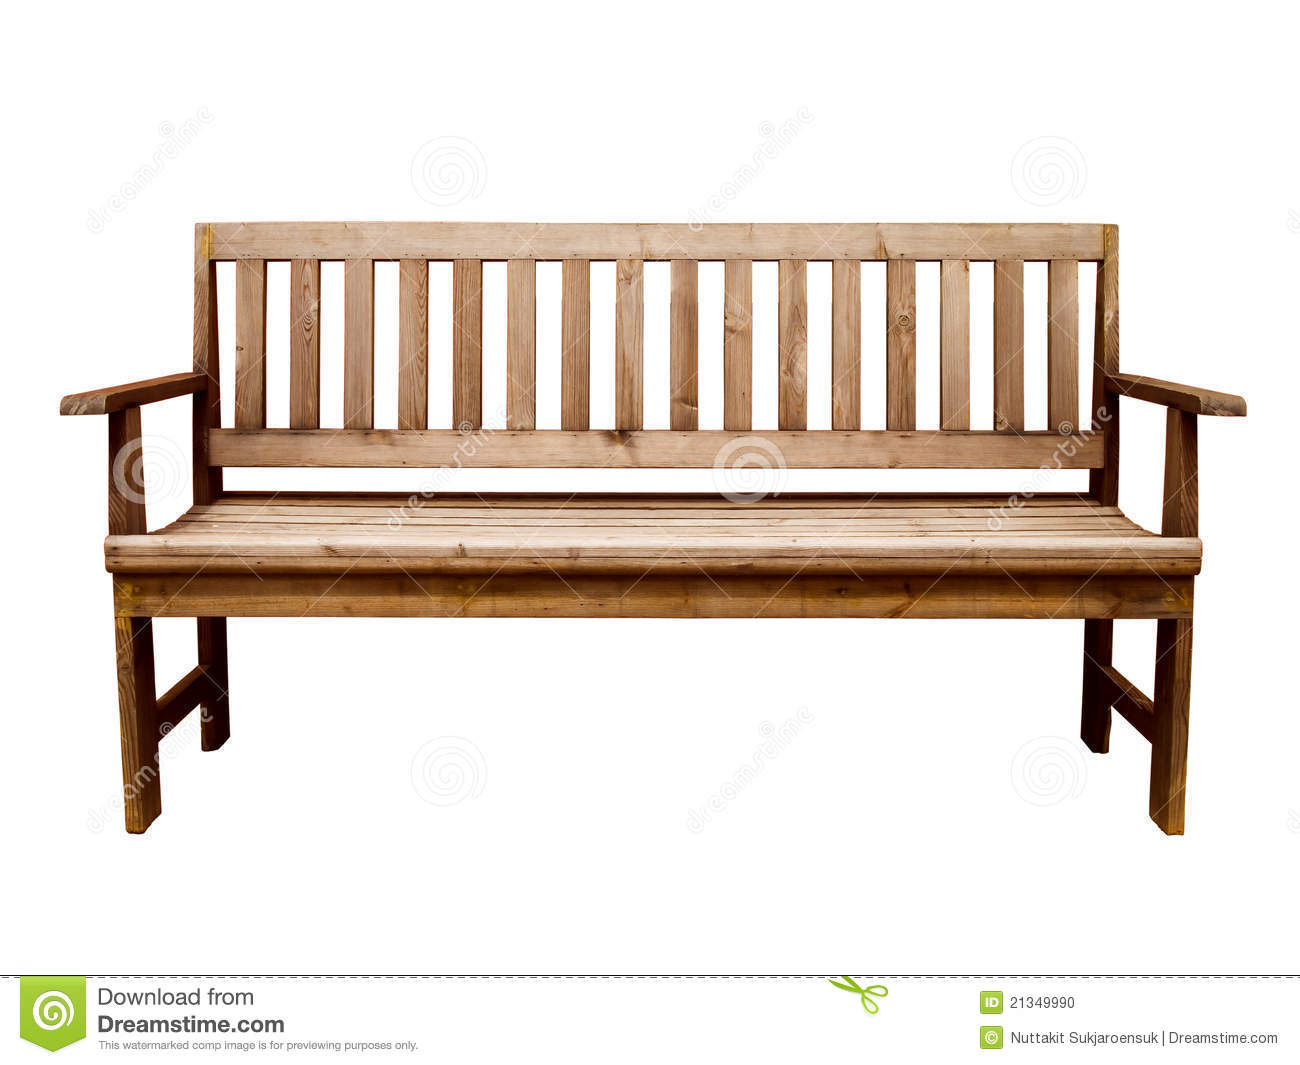 262 Wood Long Chair Isolated Photos Free Royalty Free Stock Photos From Dreamstime